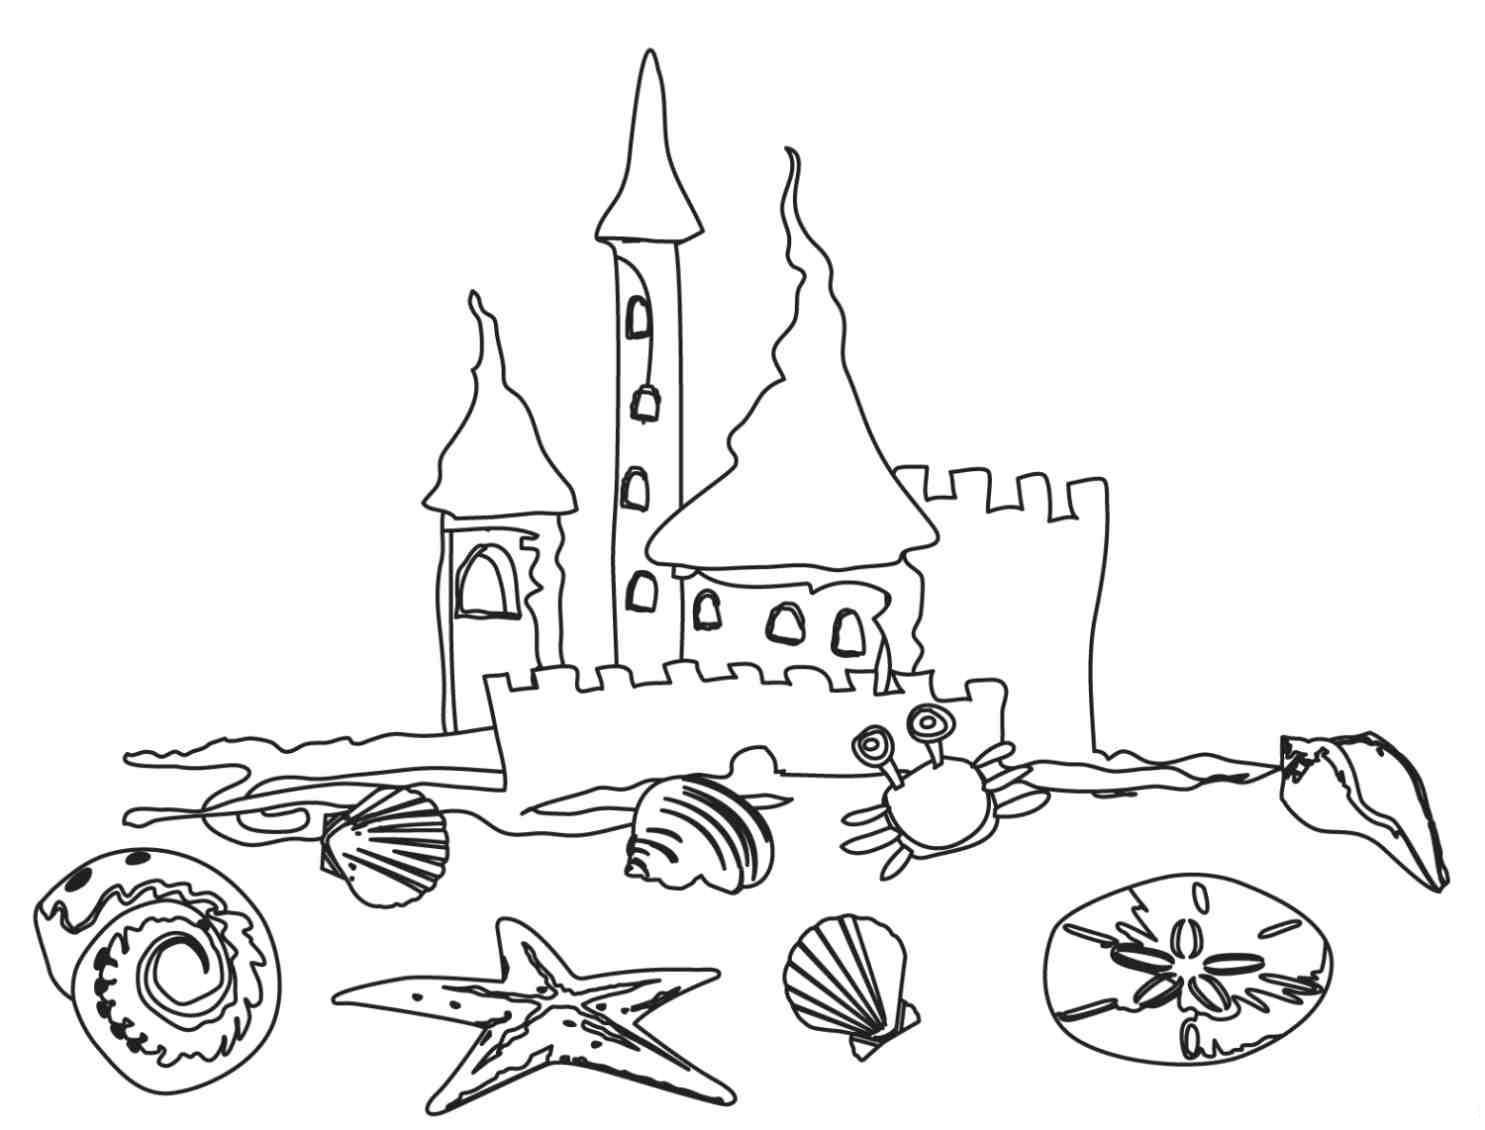 beach colouring page coloring pages free printable beach coloring pages for kids coloring colouring page pages beach